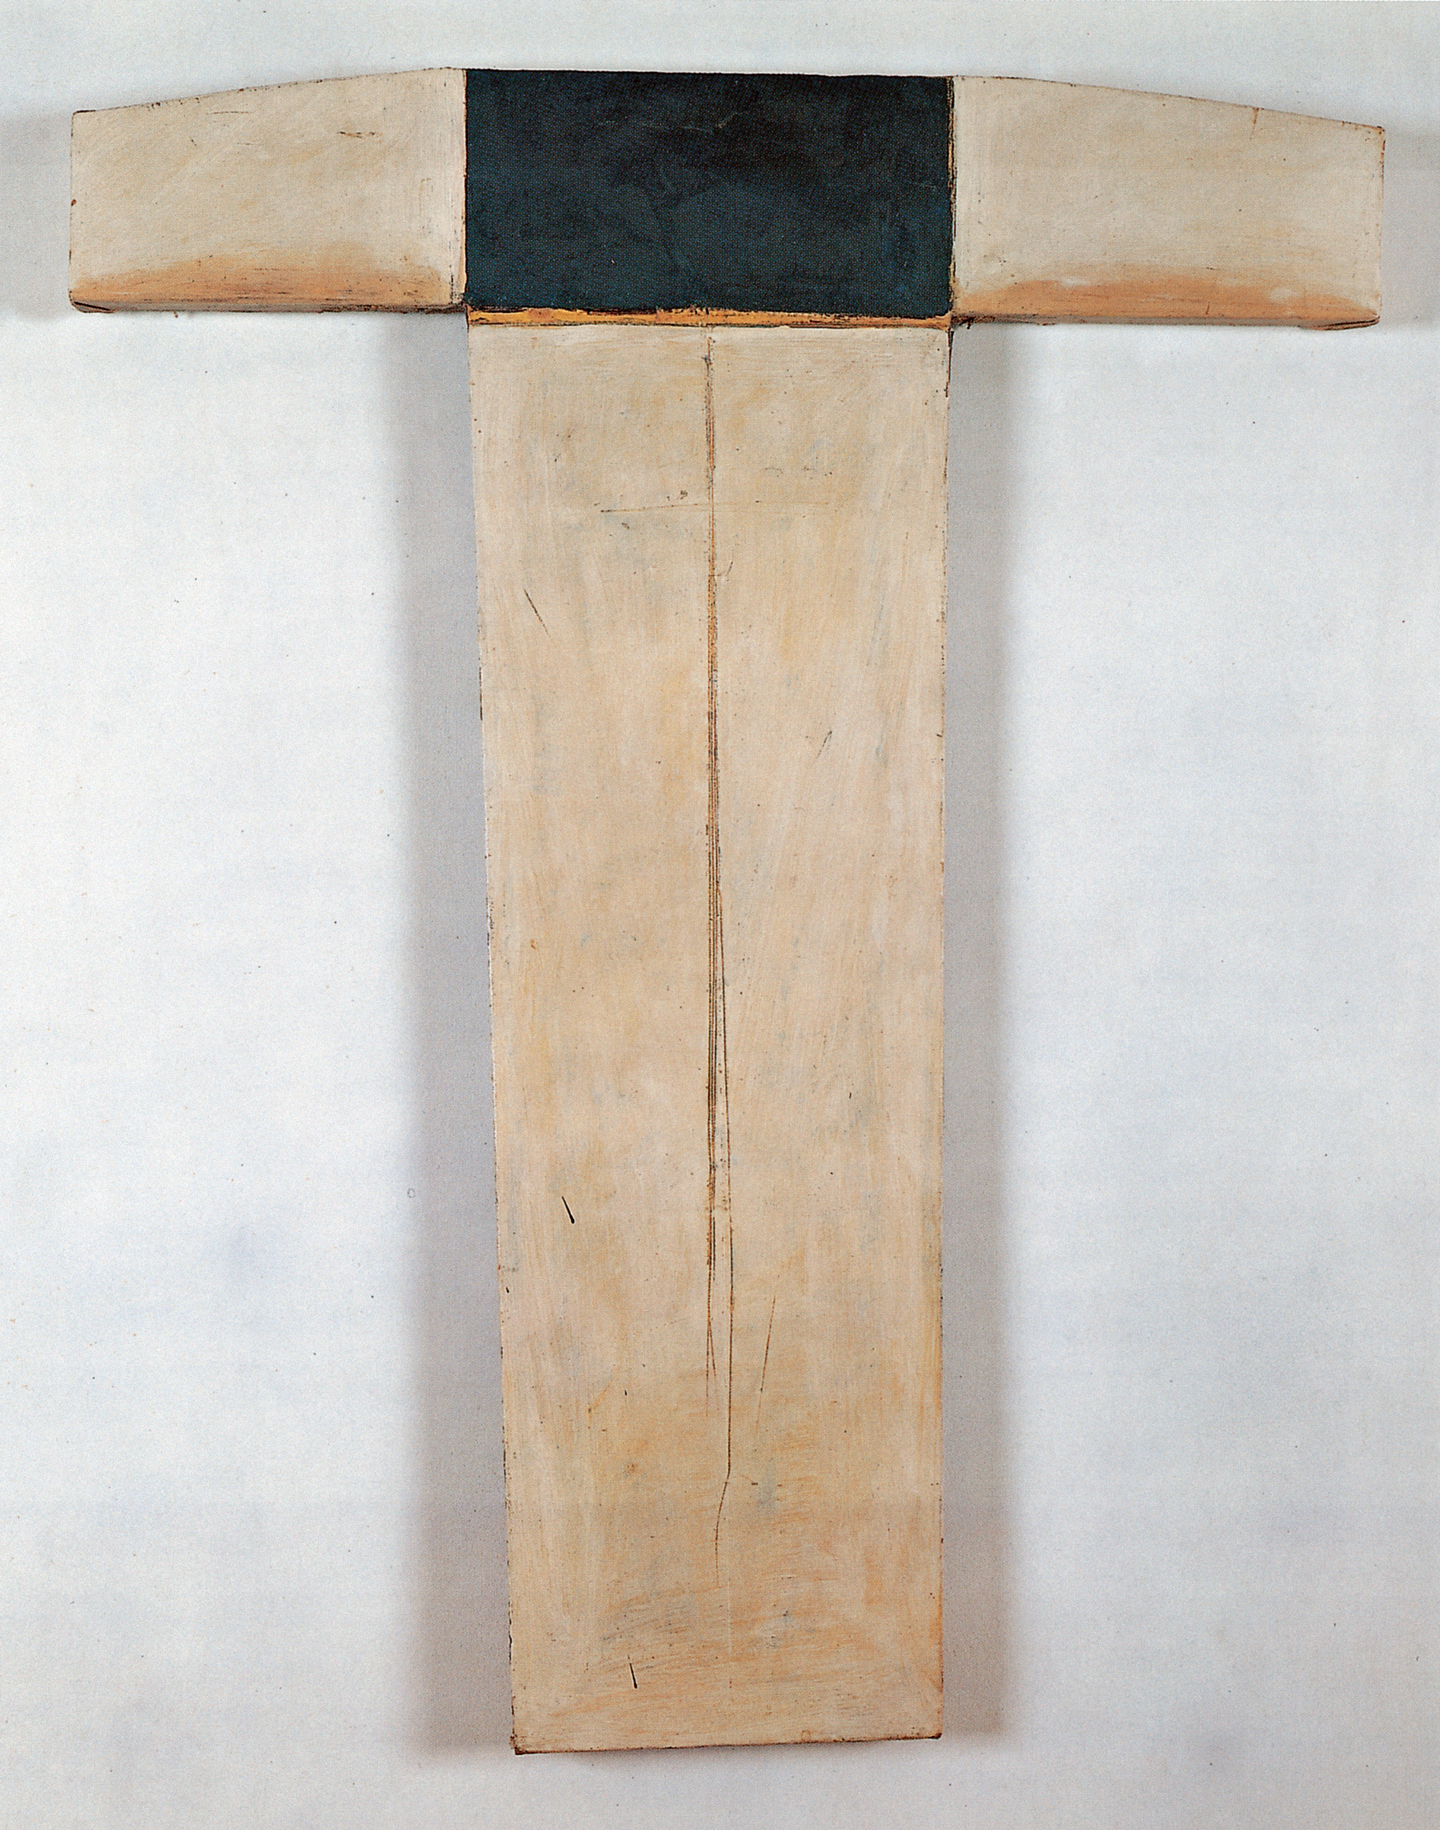 Untitled, (Steer), 1975, oil and wax on canvas 32 1/4 x 25 1/2 in.